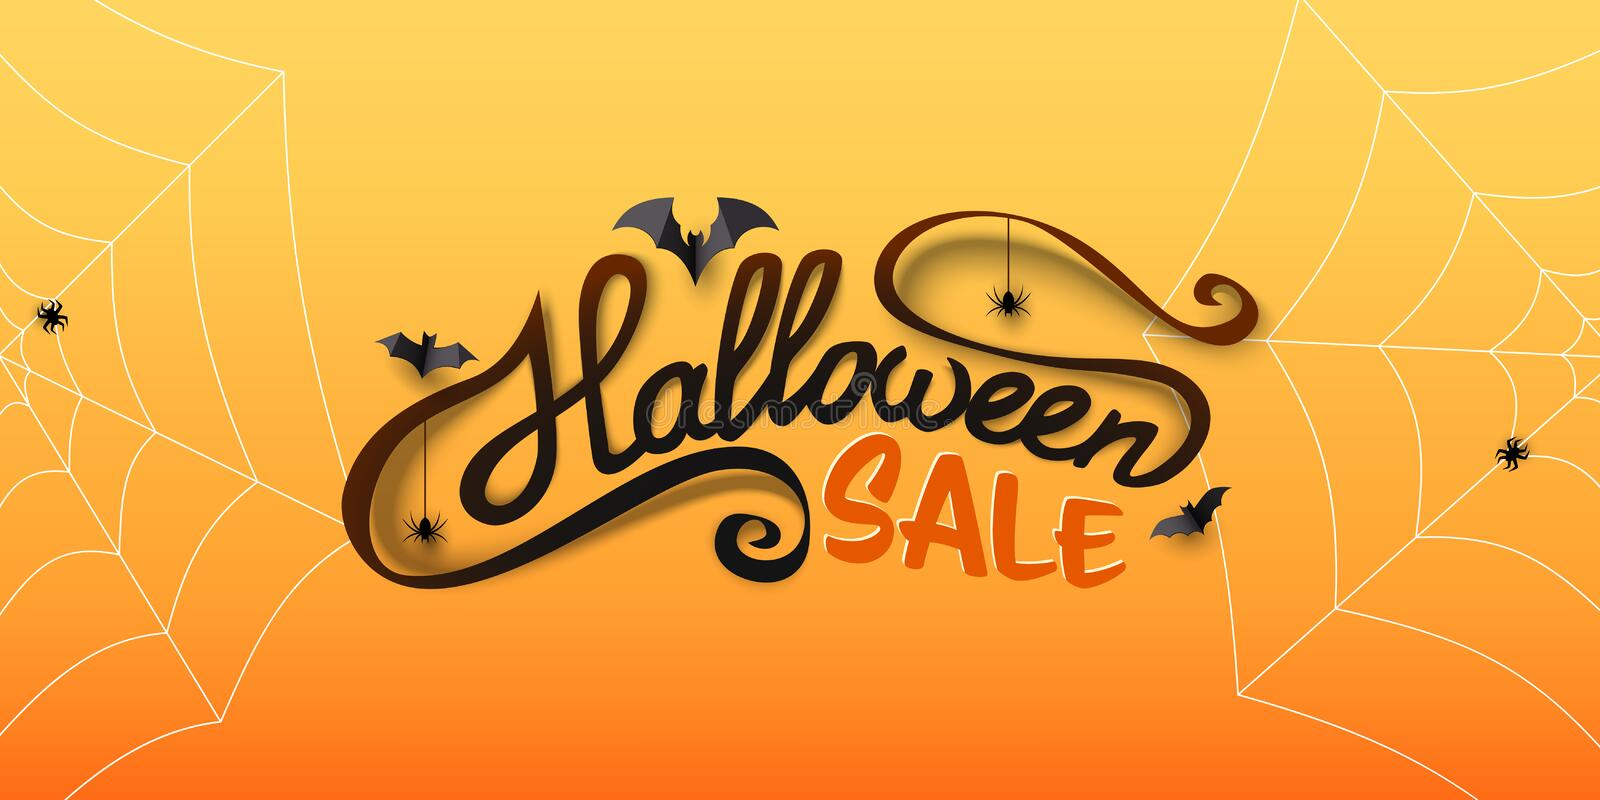 Halloween Sale banner with calligraphy text, paper bats, spiders, spiderwebs. Hand drawn lettering. stock illustration